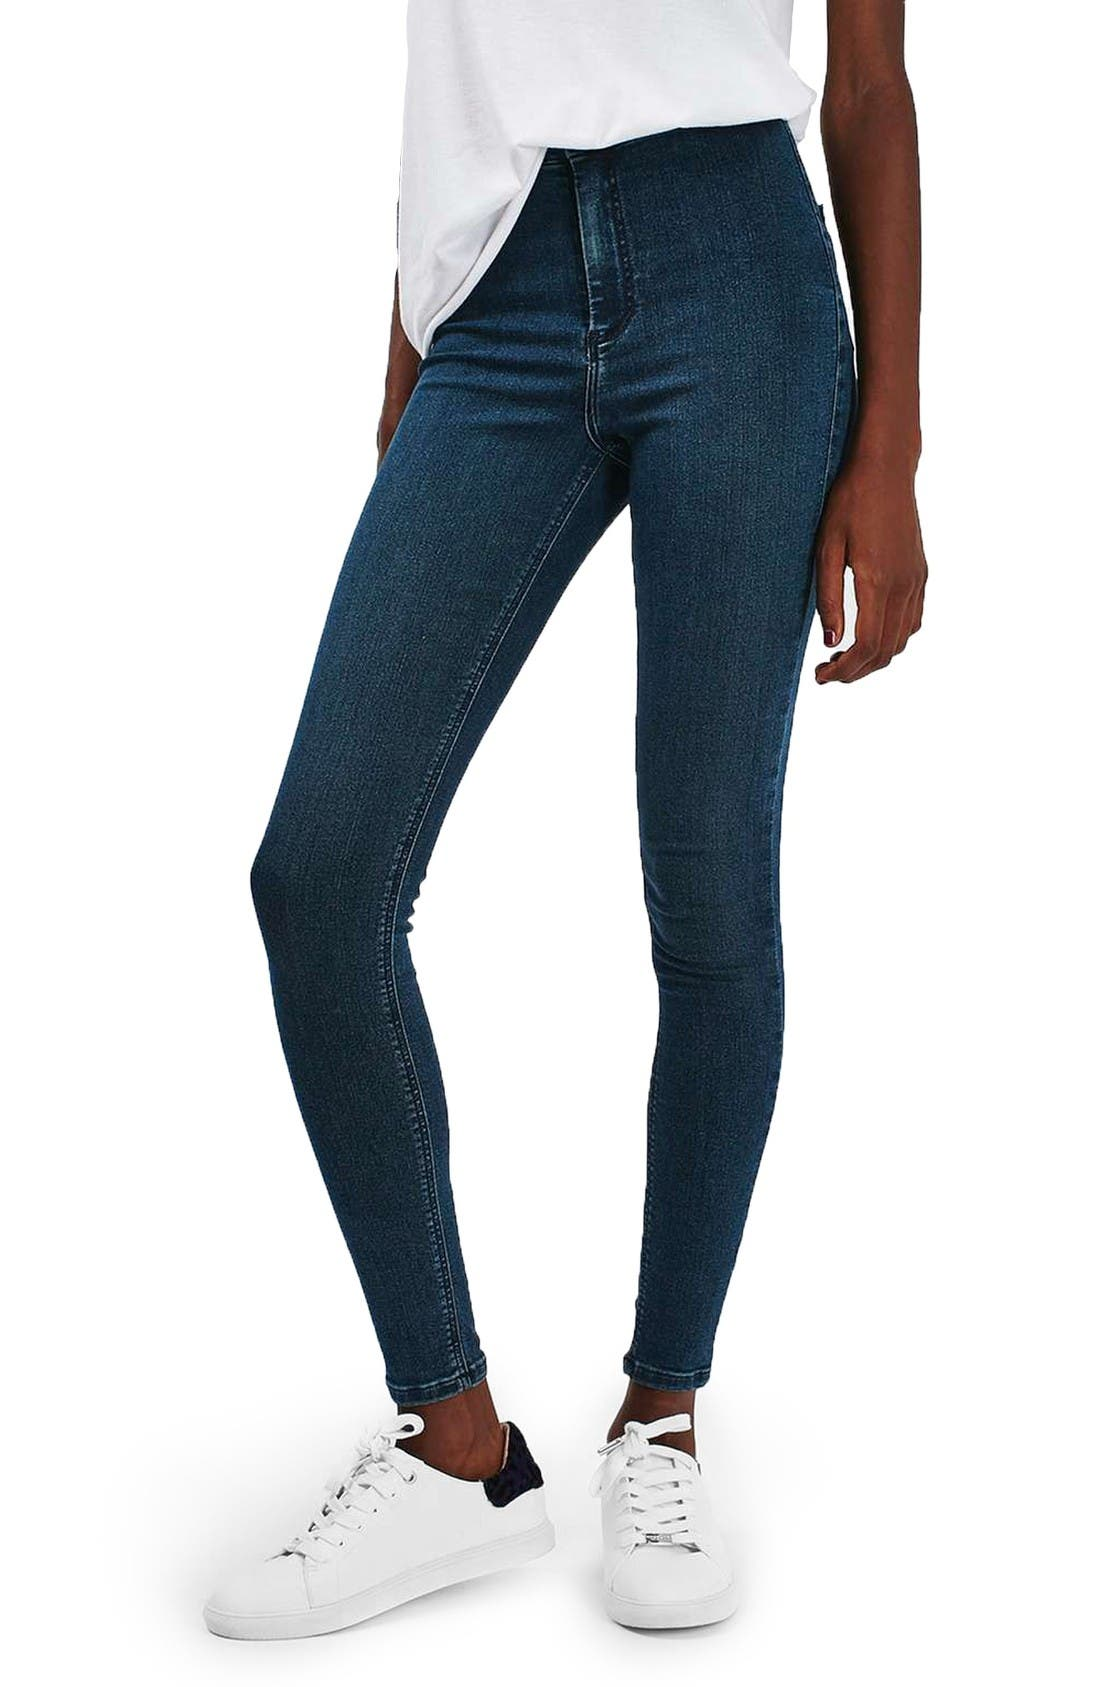 Alternate Image 1 Selected - Topshop Joni High Waist Skinny Jeans